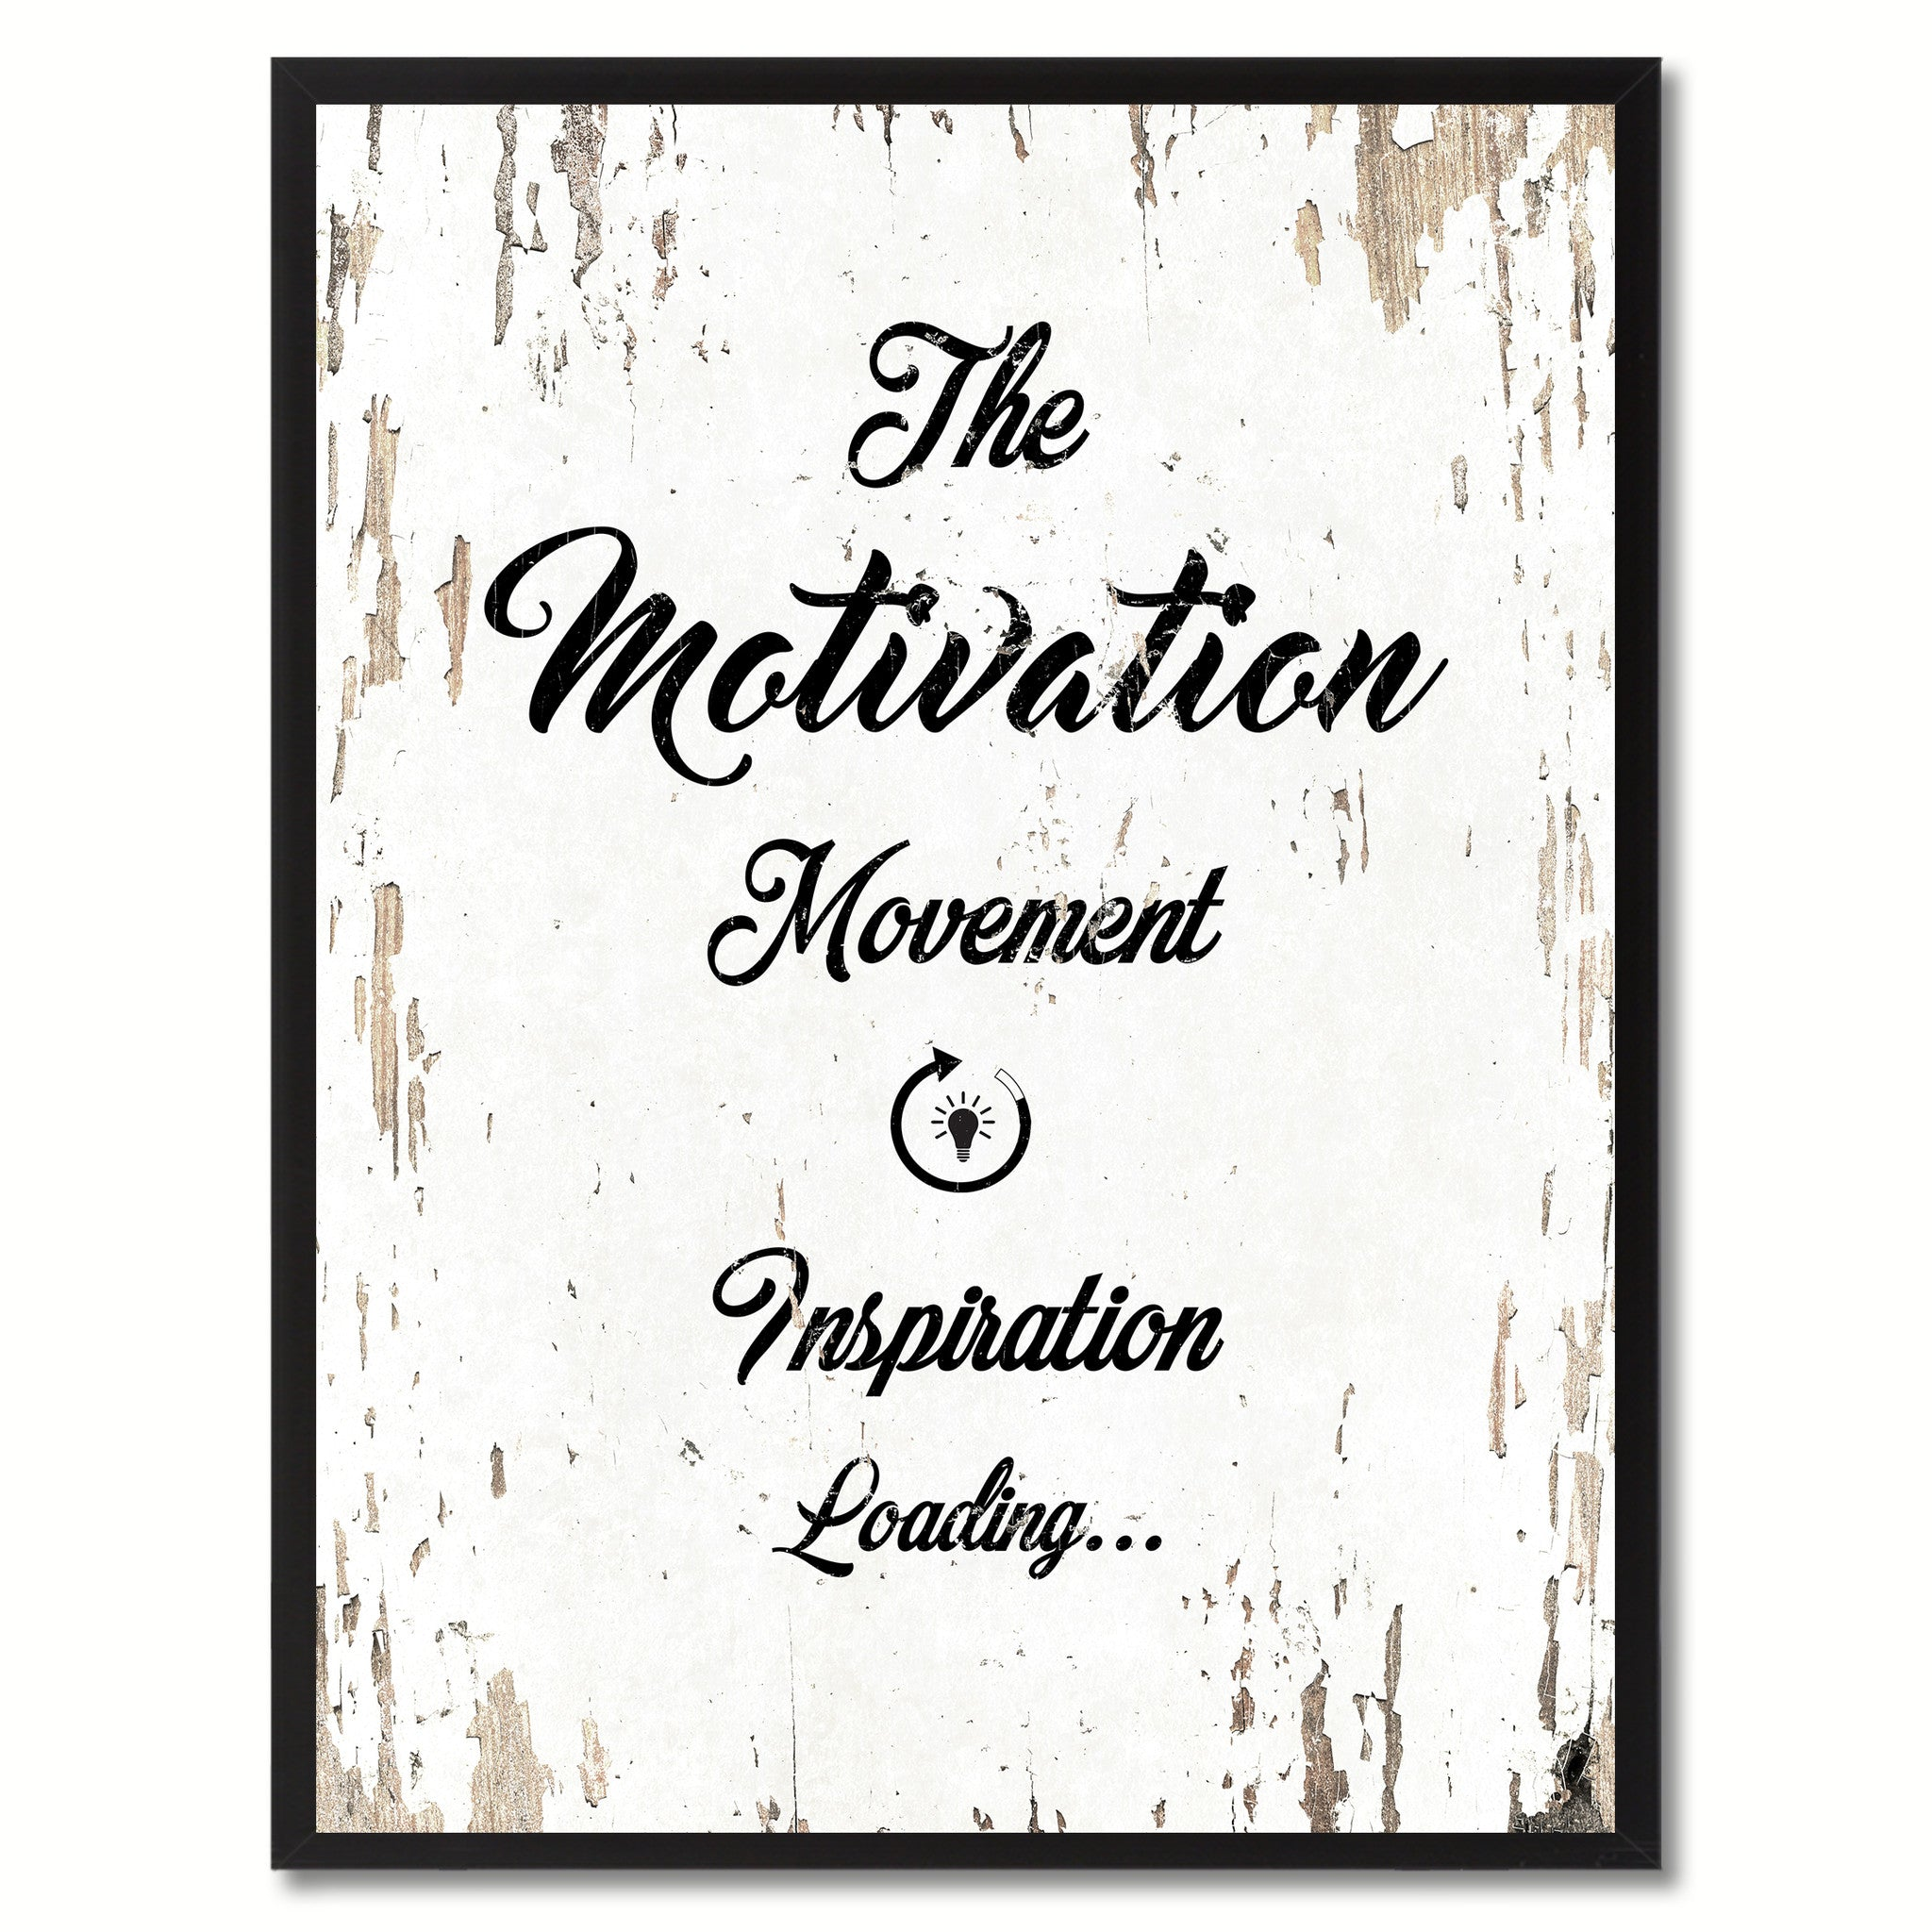 The motivation movement inspiration loading  Quote Saying Gift Ideas Home Decor Wall Art